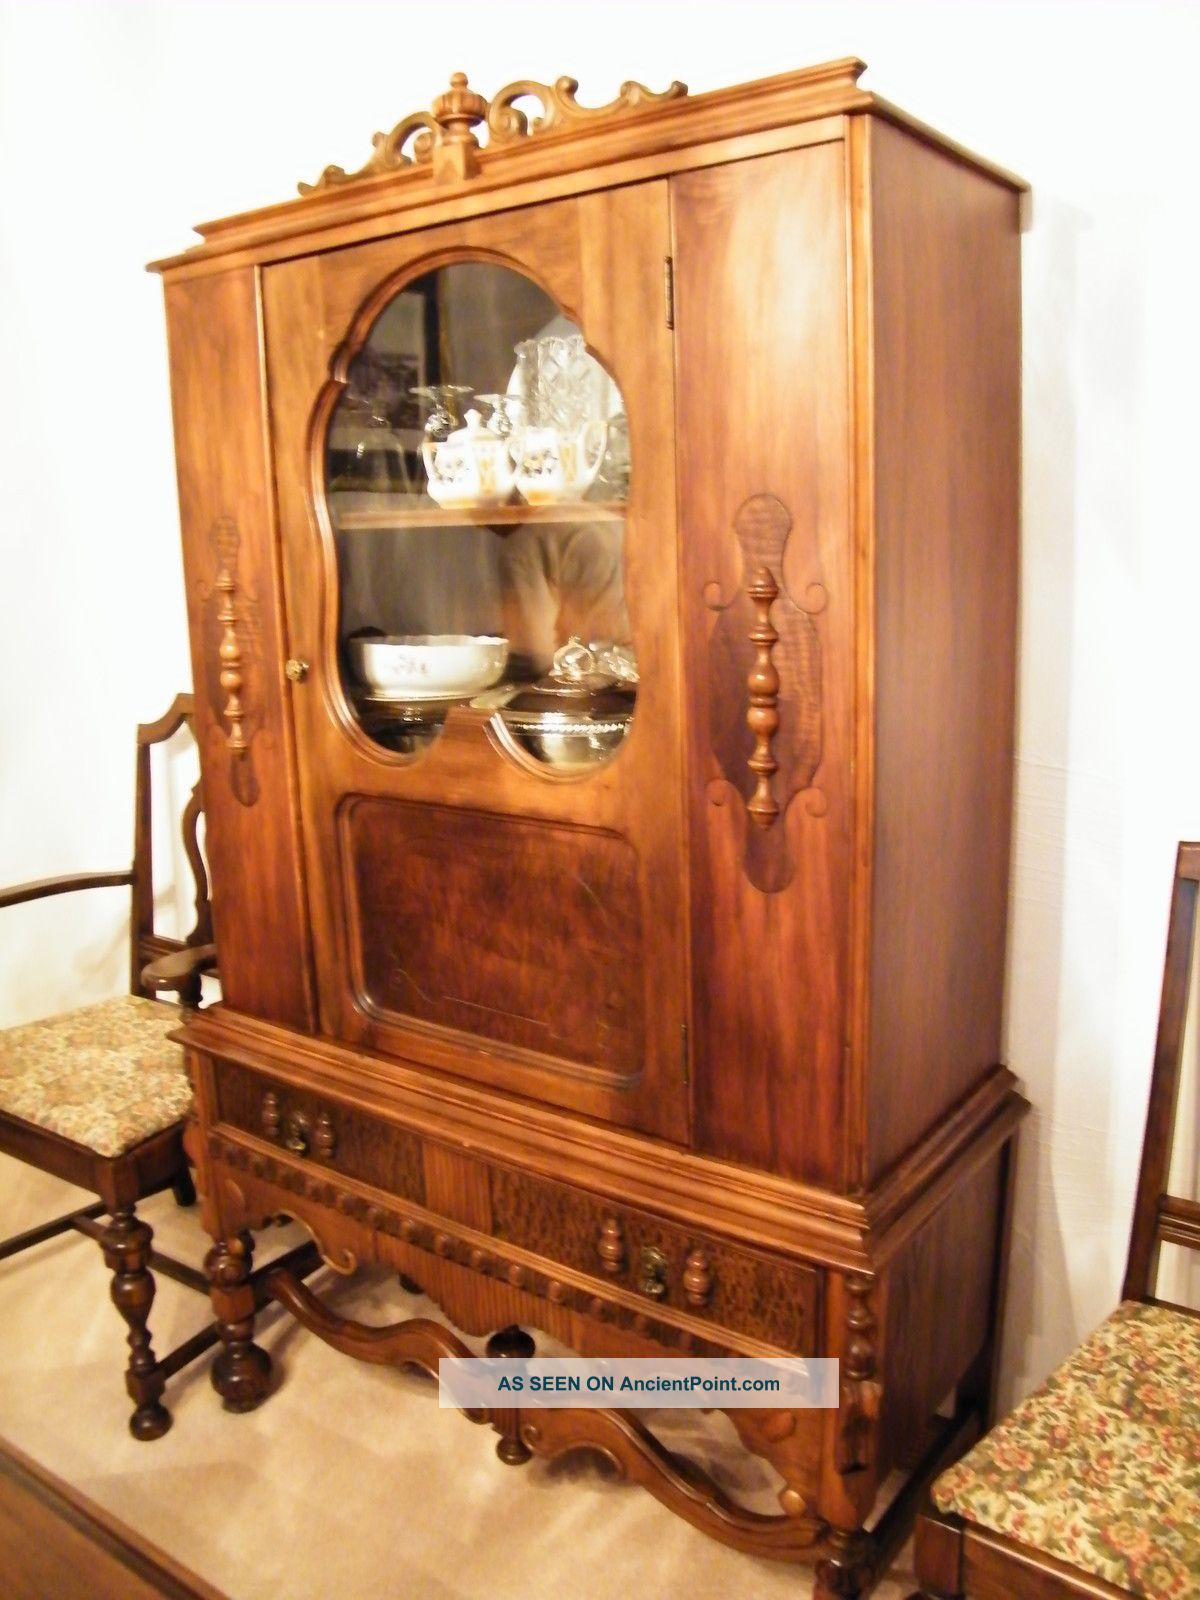 Very Best Dining Room Sets with China Cabinets 1200 x 1600 · 214 kB · jpeg